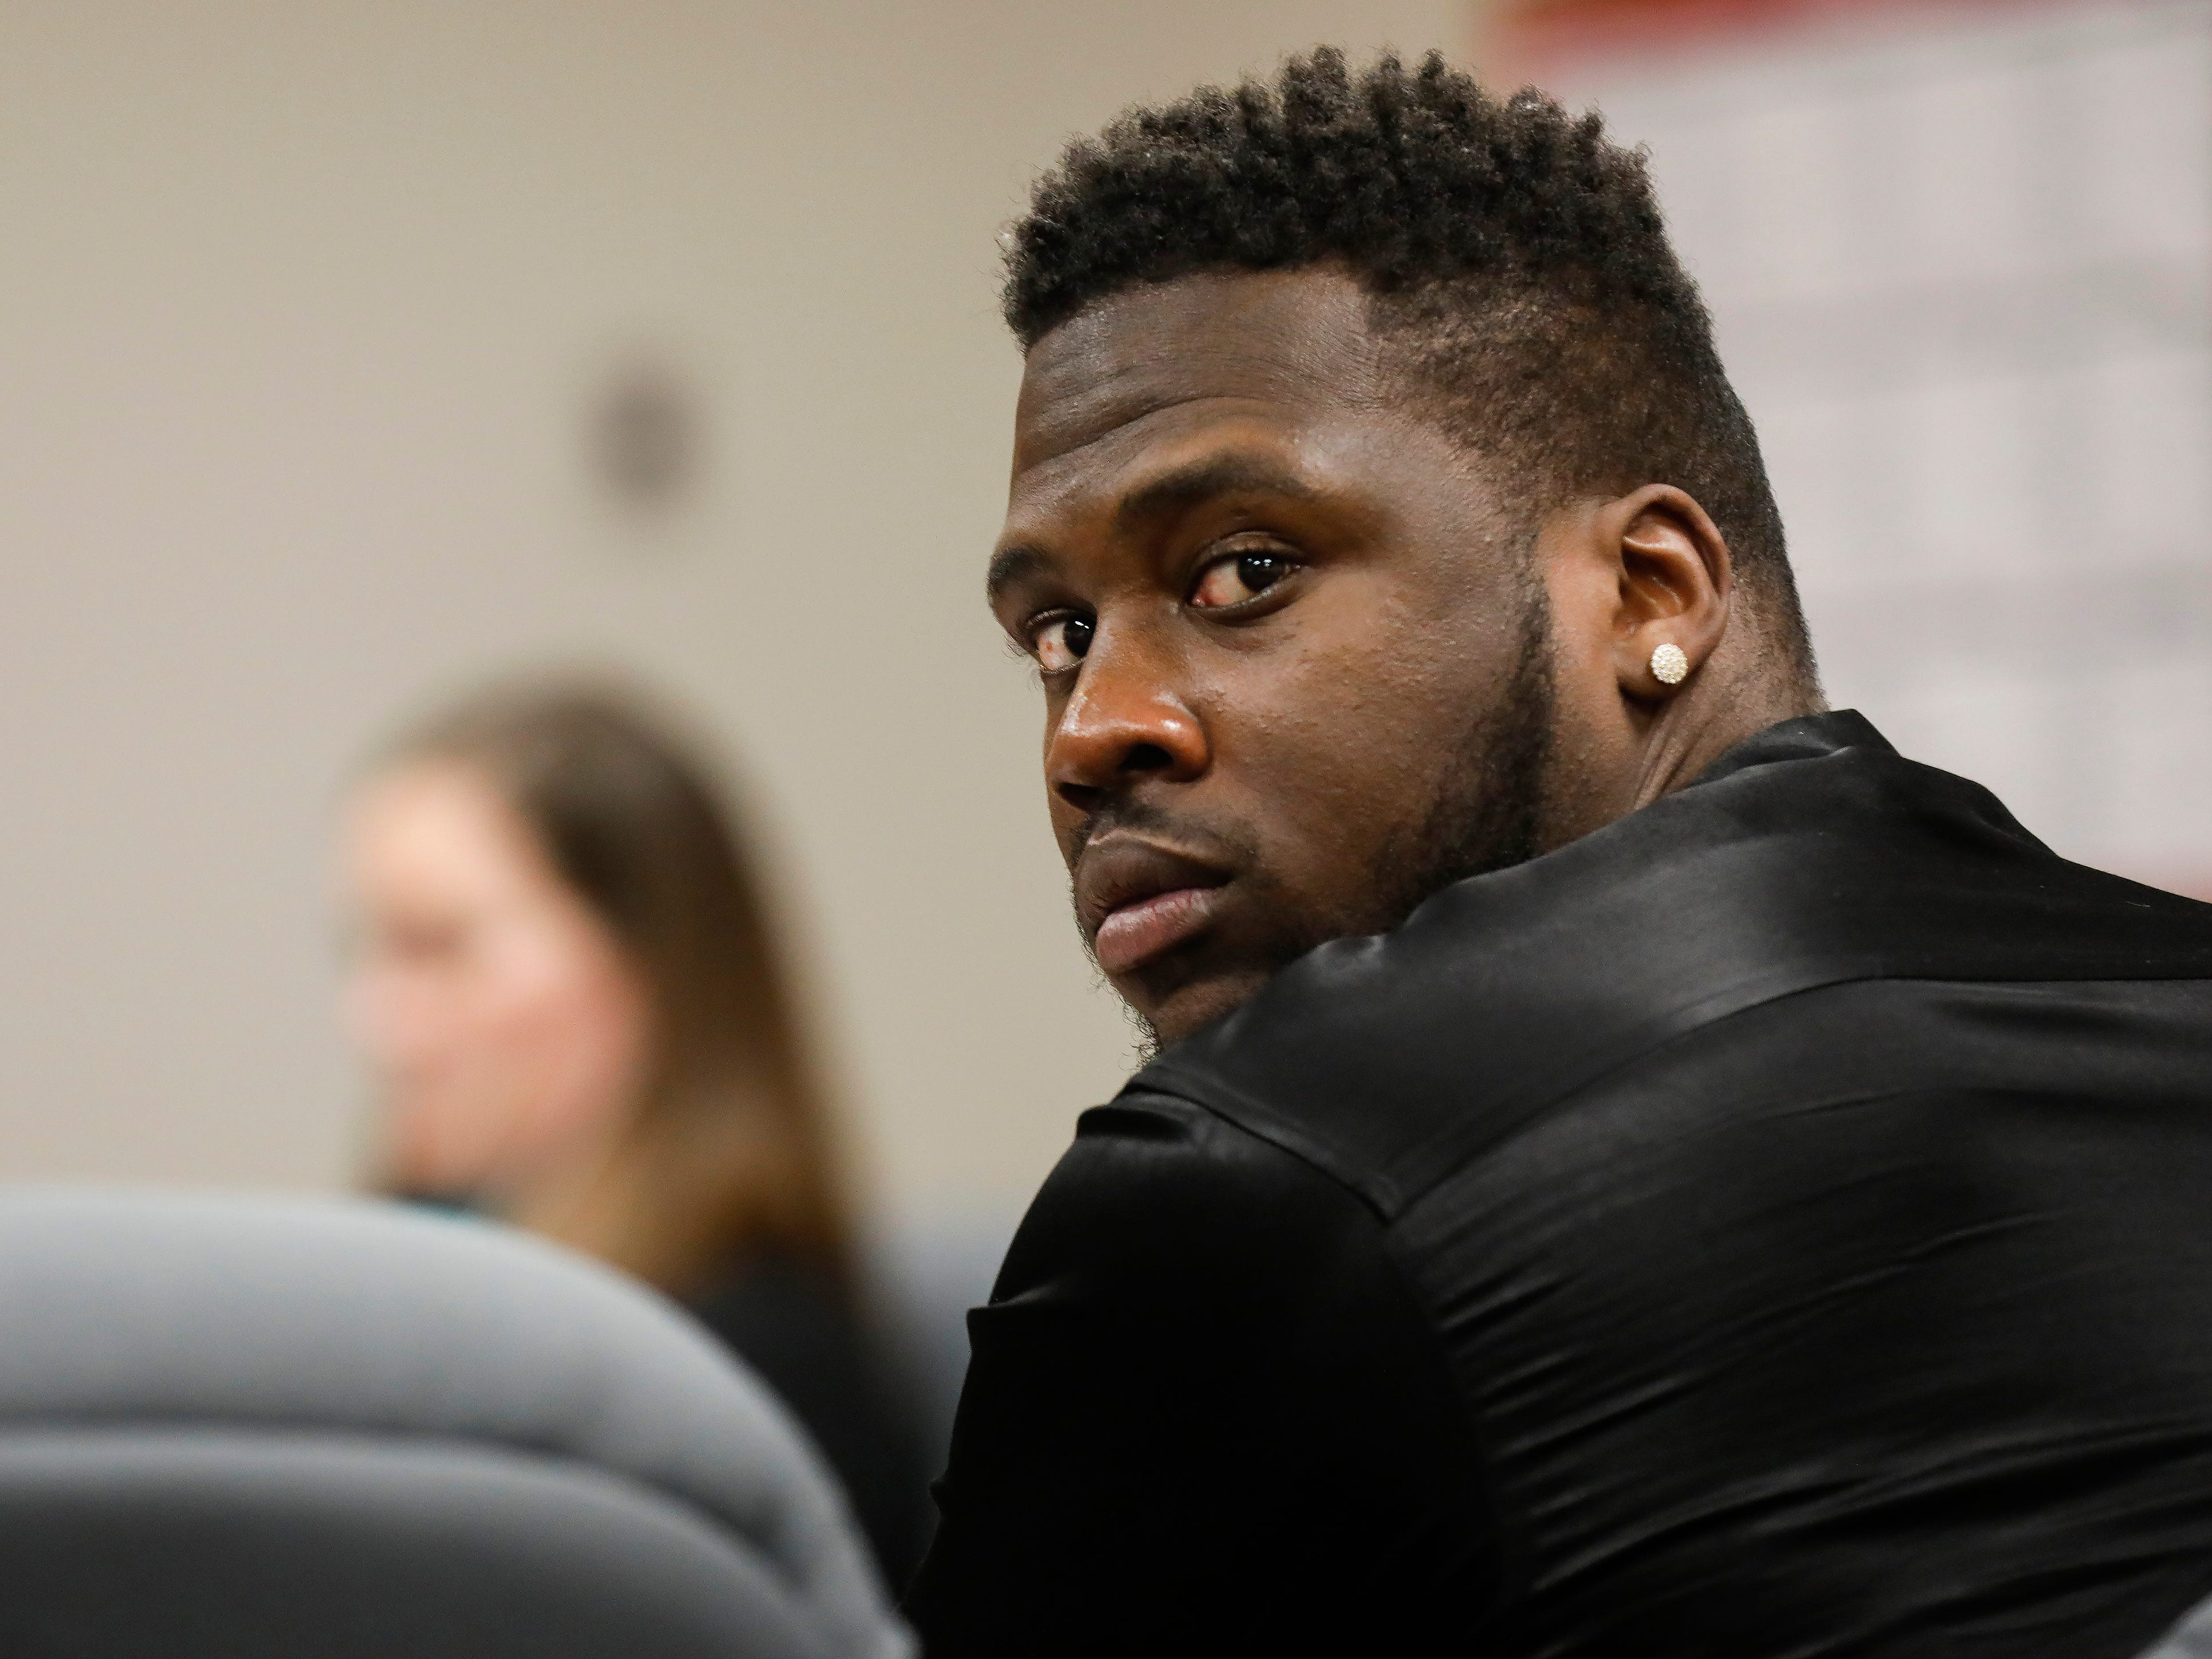 Dorial Green-Beckham was sentenced to 90 days in the Greene County Jail for violating his probation in a prior DWI case on Friday, March 8, 2019.